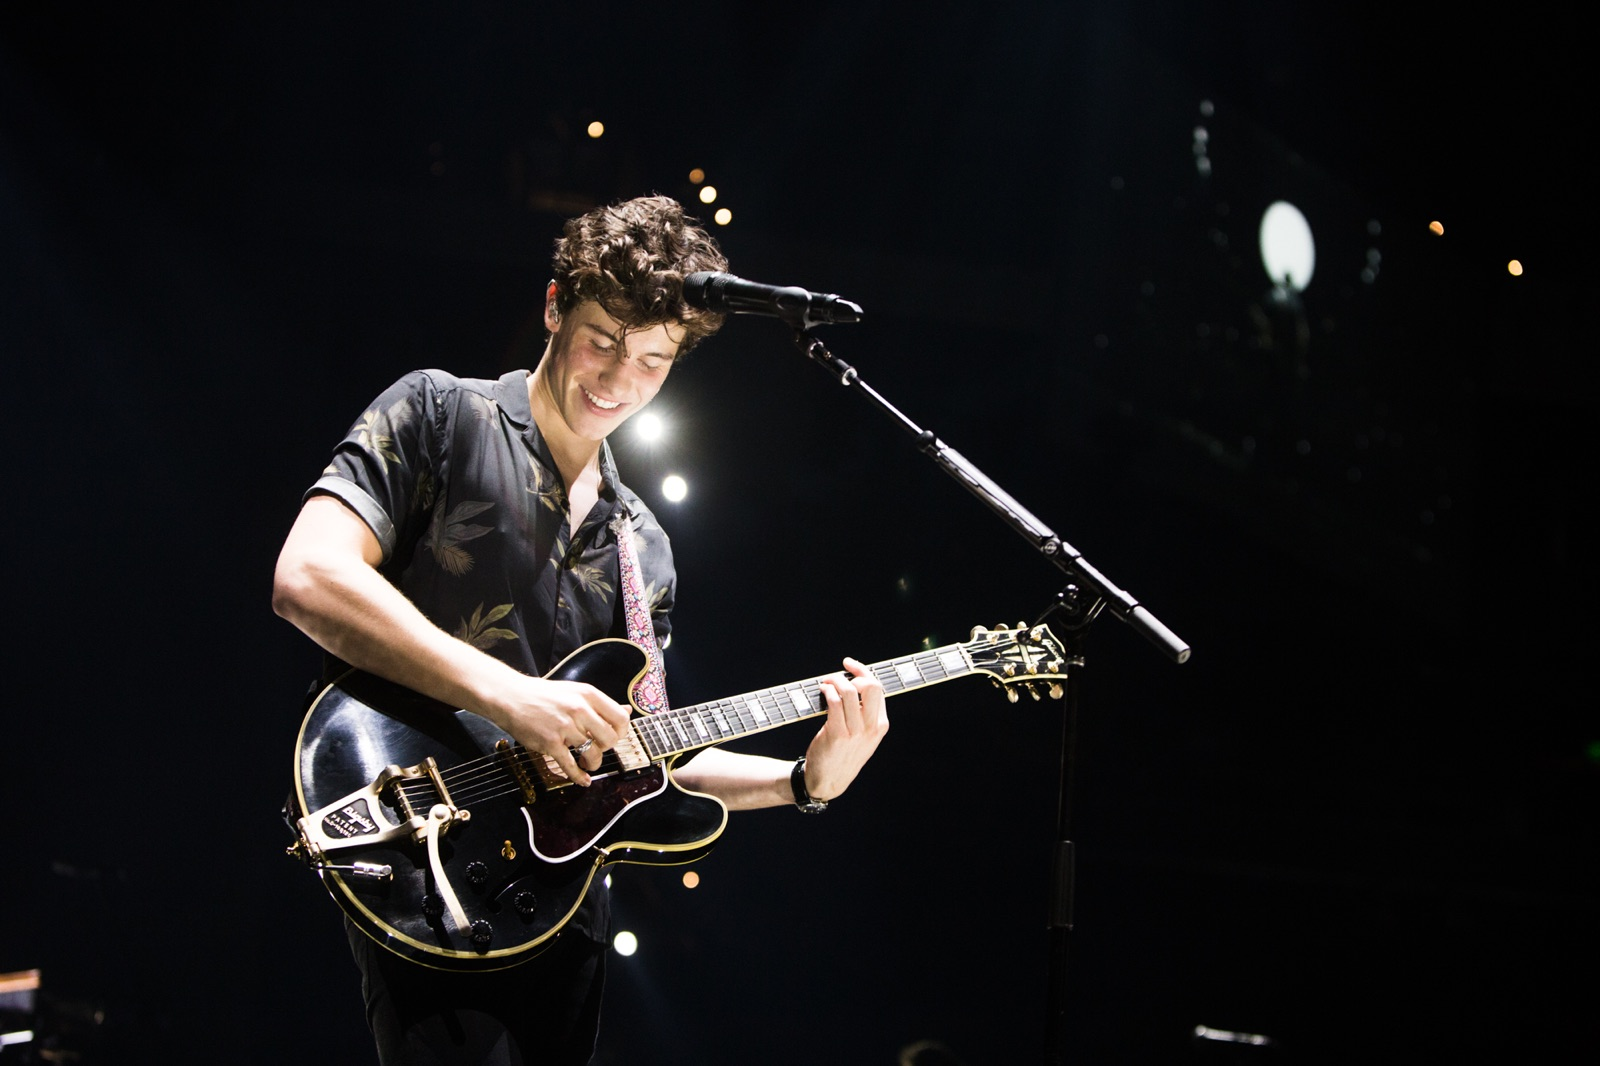 Shawn Mendes Has Revealed He's Stopped Taking His Anxiety